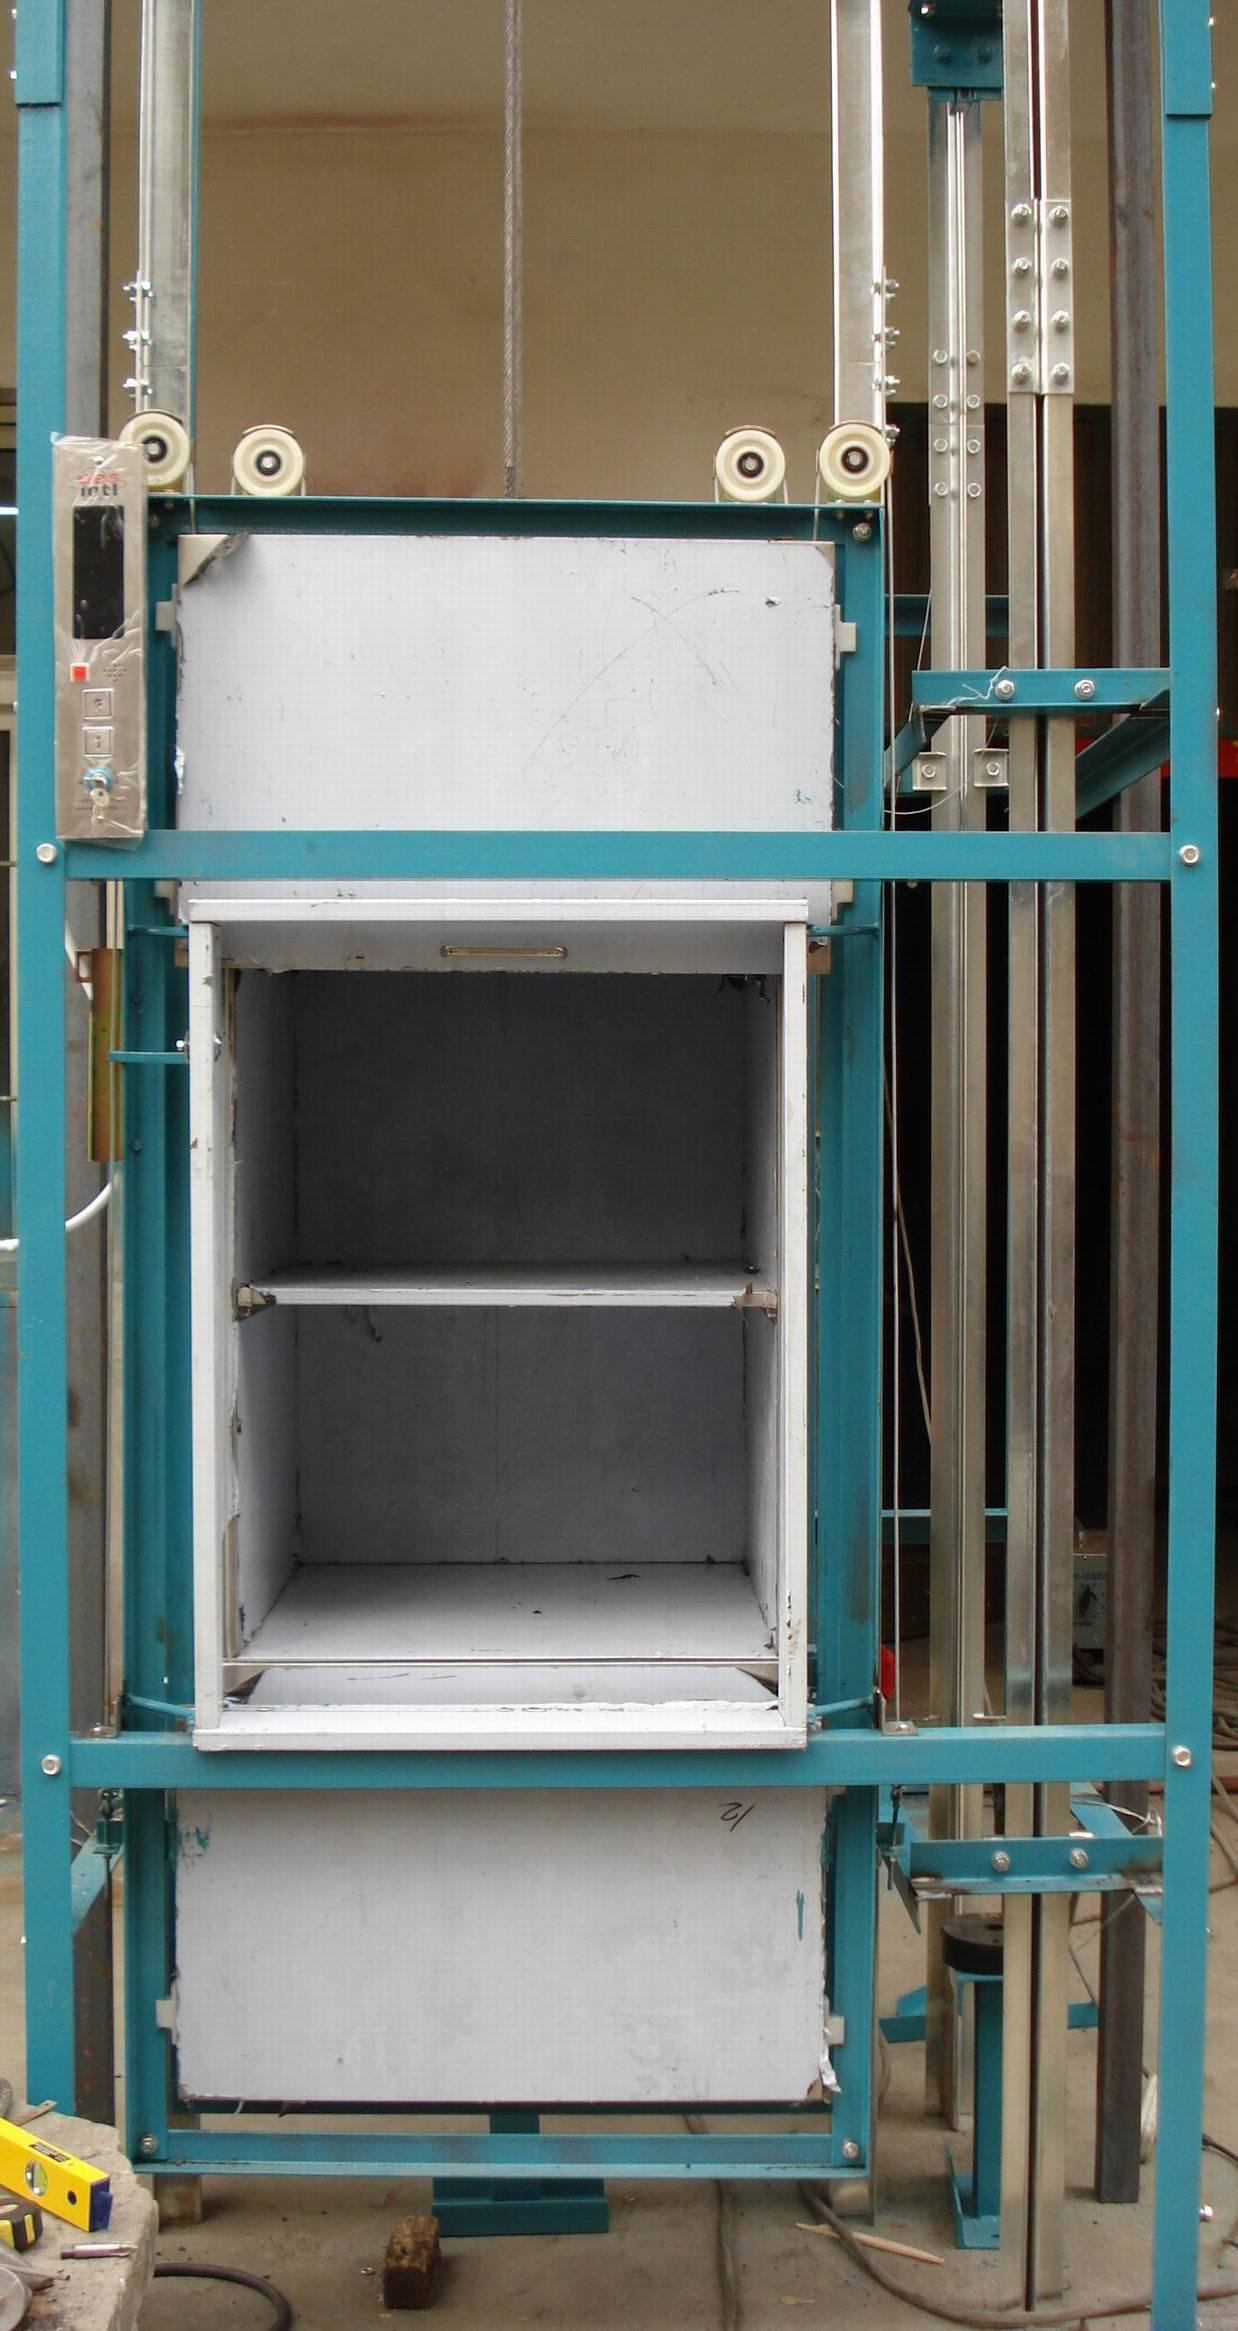 How To Design A Dumbwaiter How To Design A Dumbwaiter